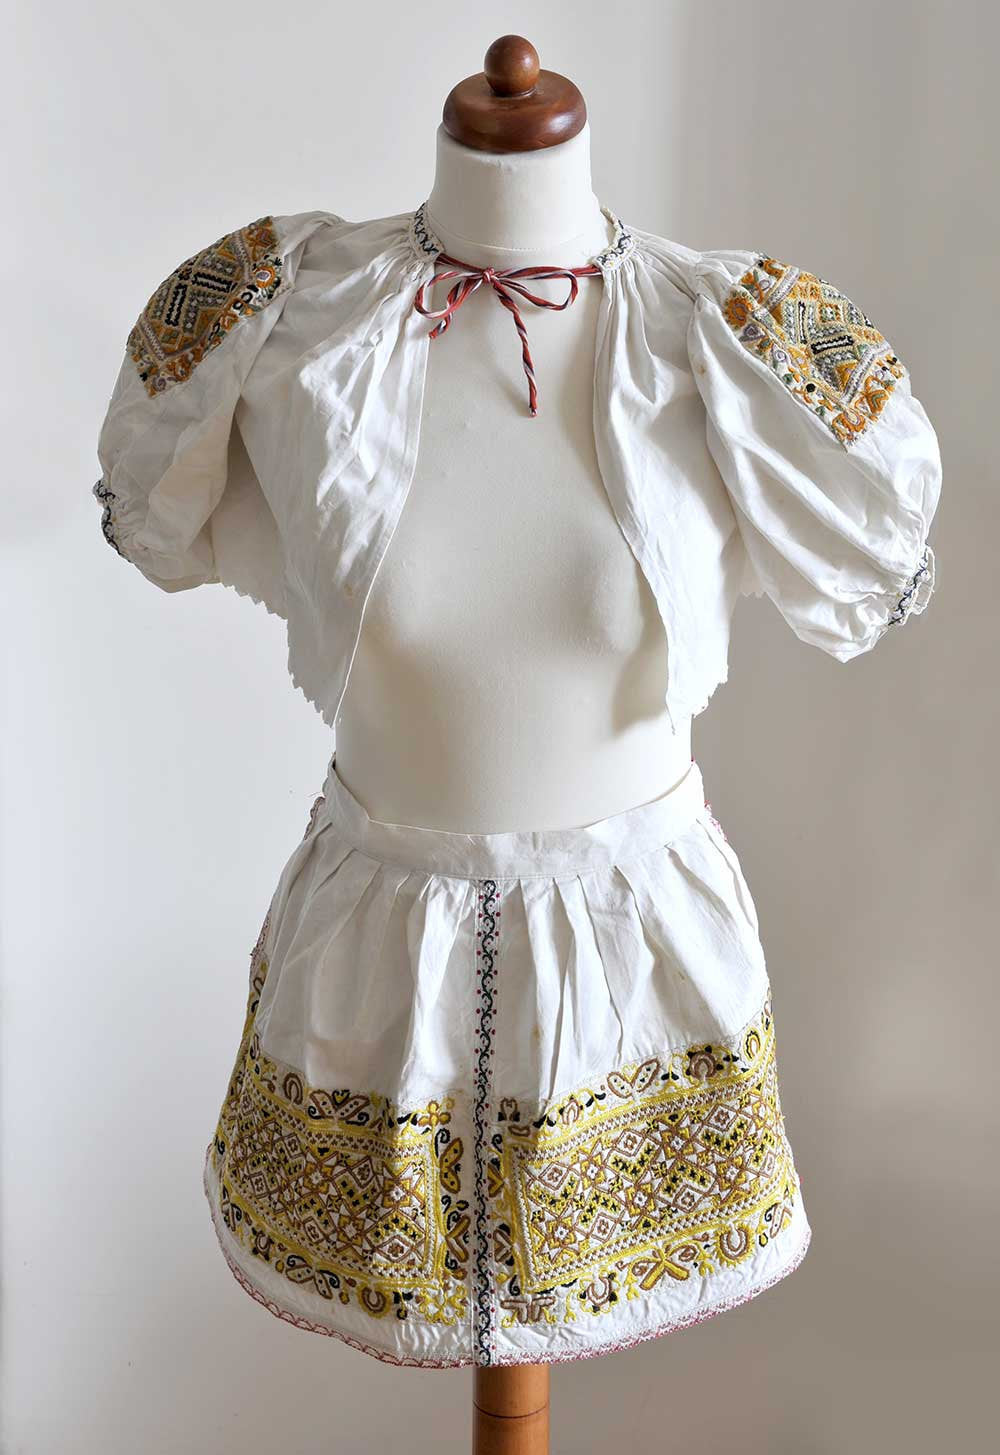 Czech/Moravian antique child's kroj folk costume - rare find and wonderful hand work. - Baba Store - 2